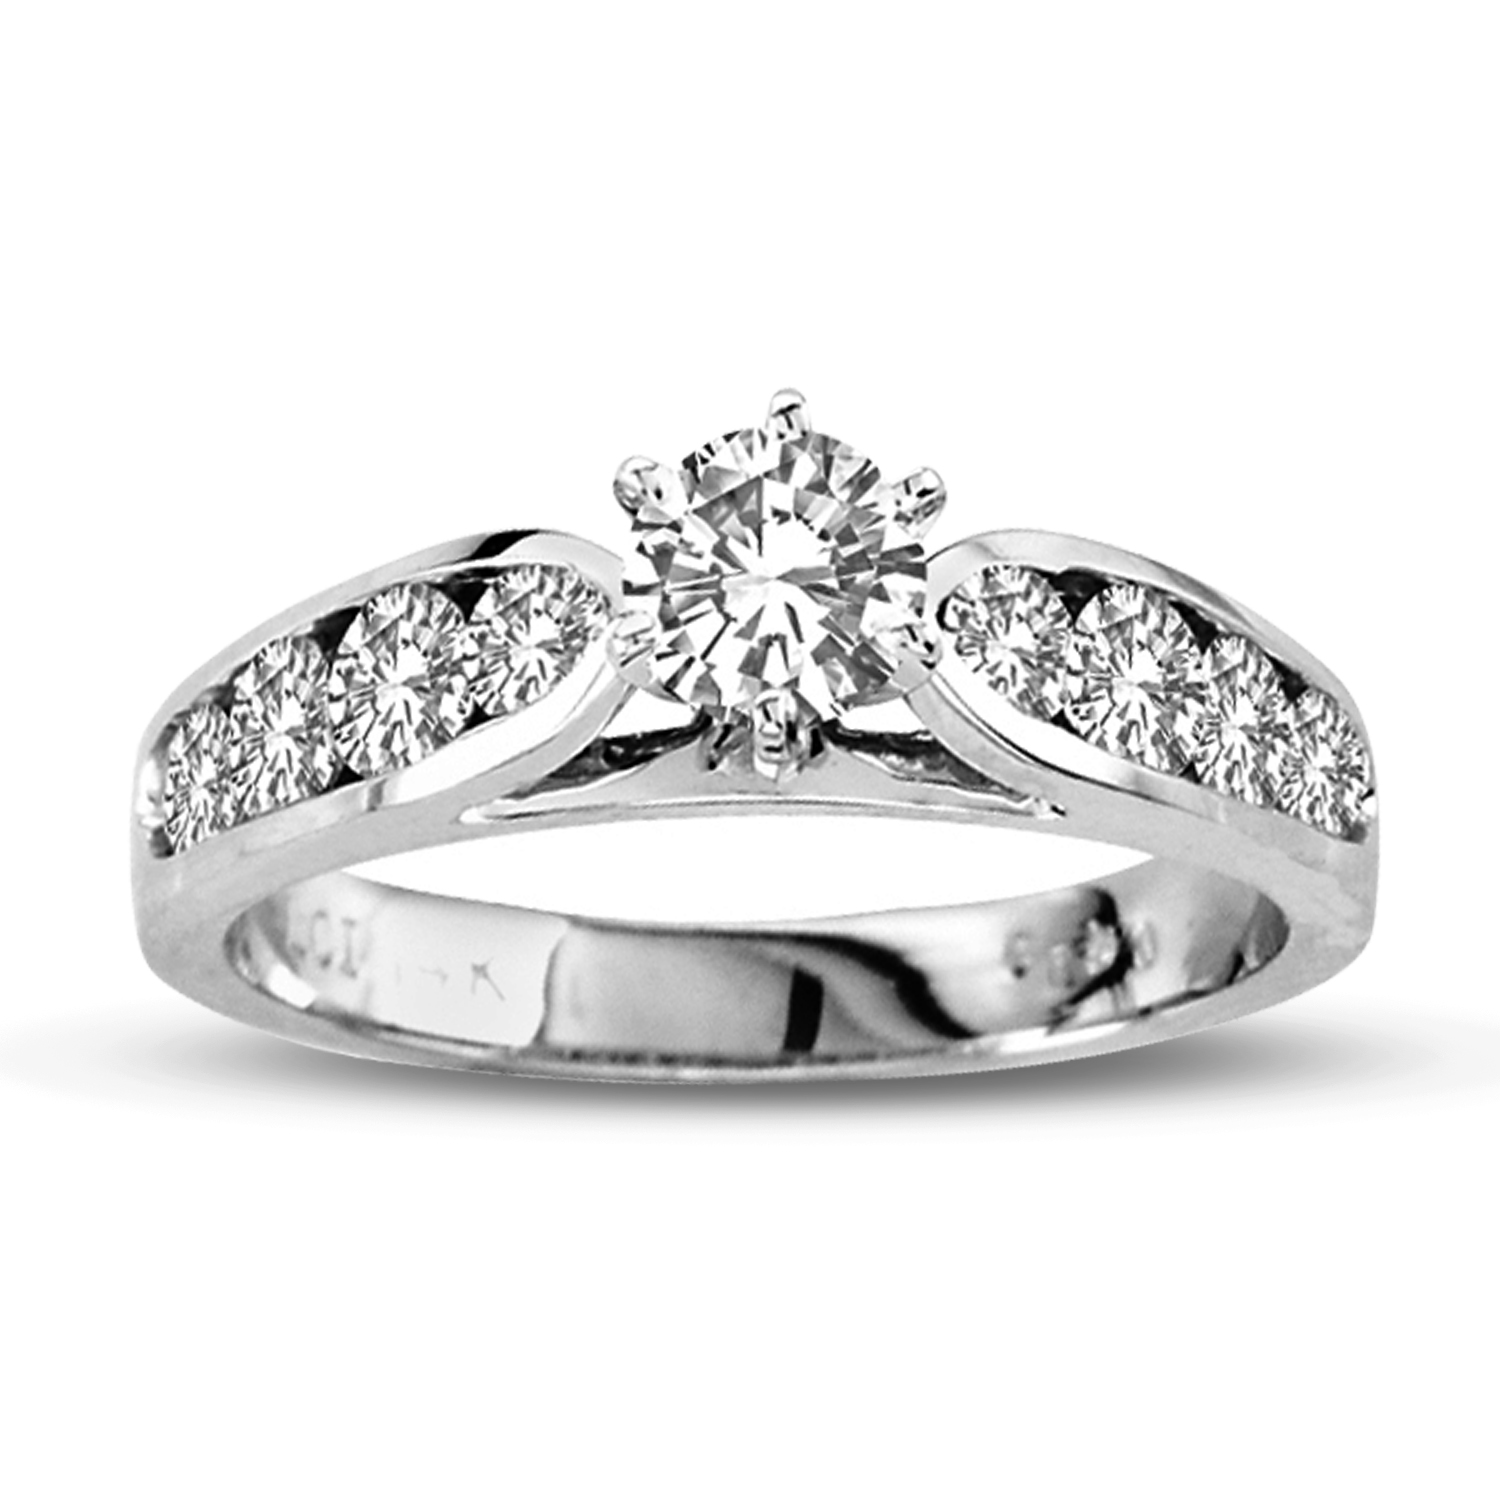 jewellery with ring in pave gold diamond engagement shank oval white rockher and rings wedding crossover